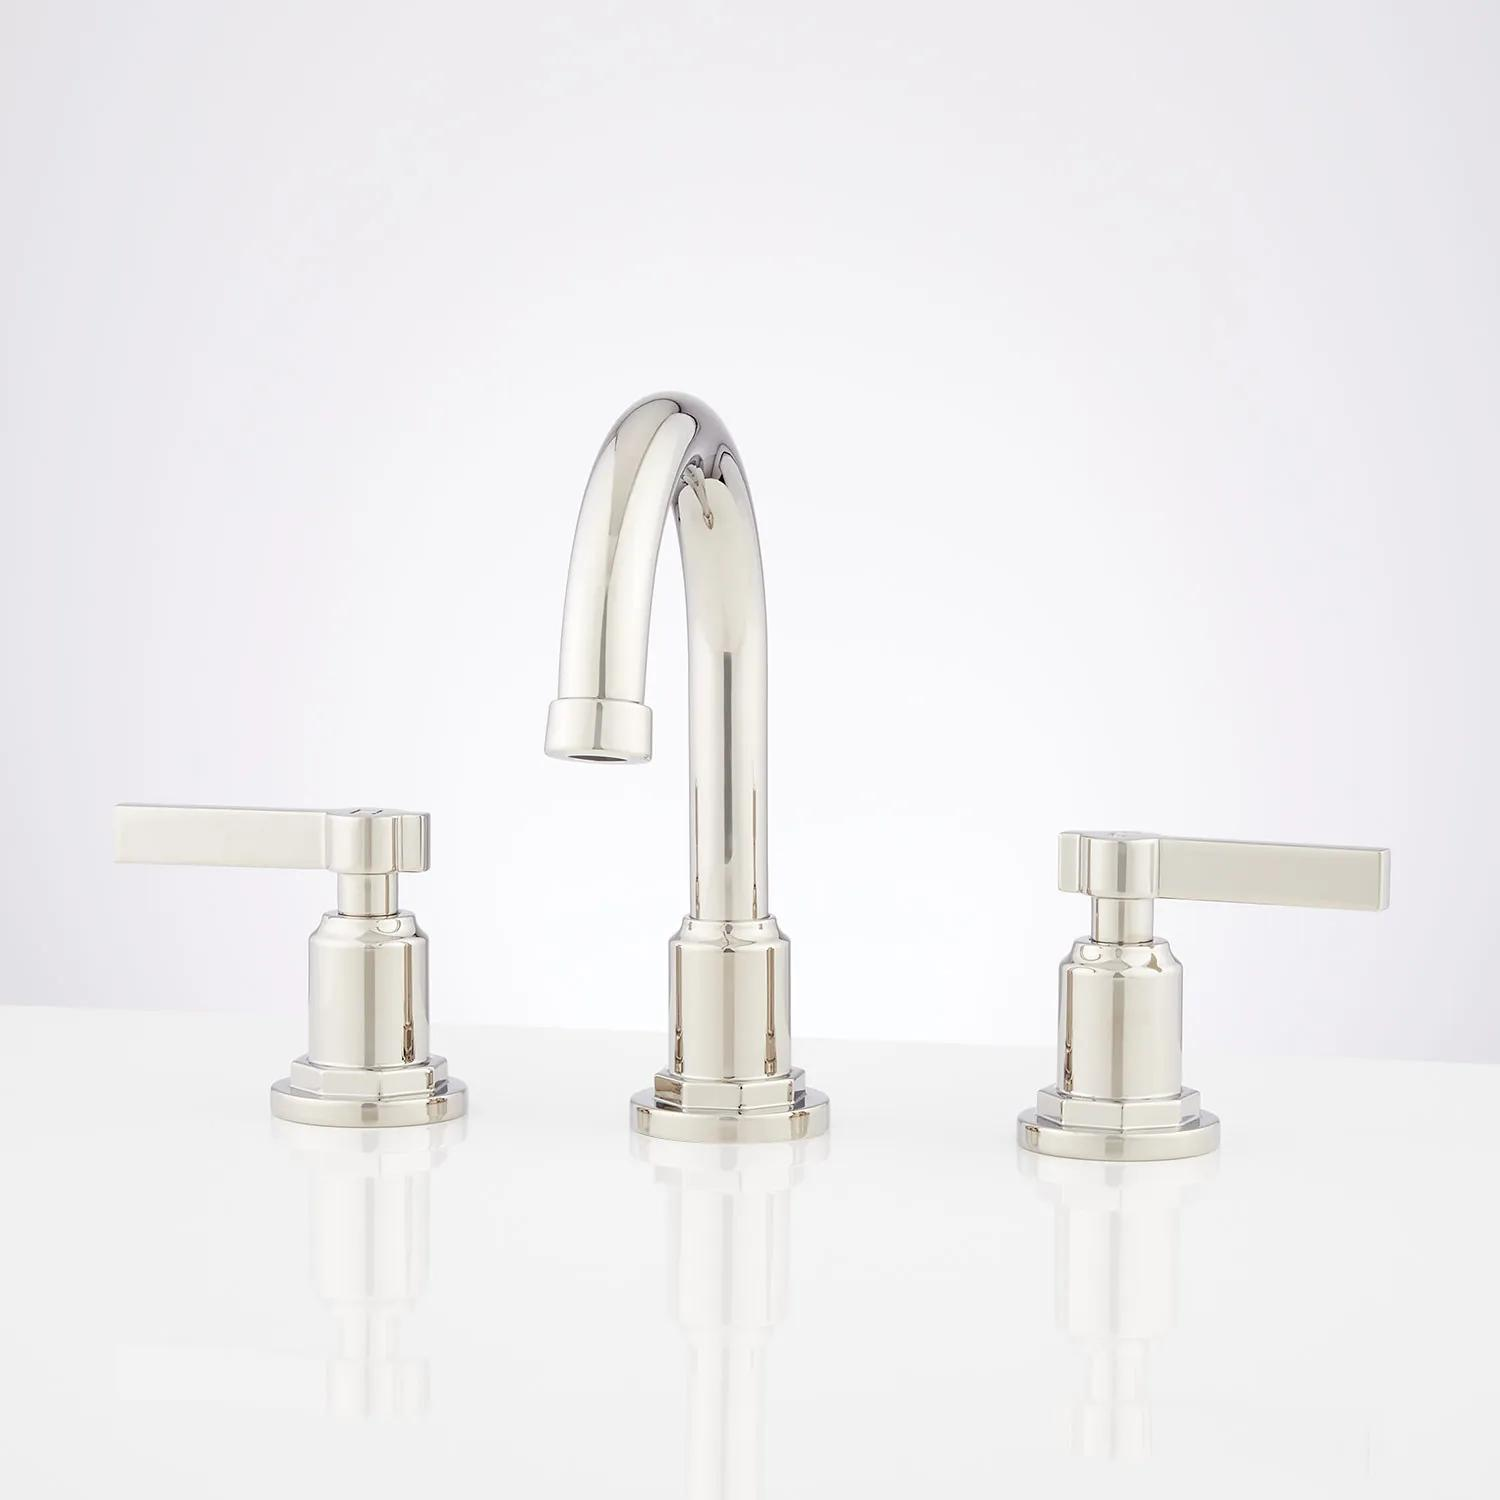 Greyfield Widespread Bathroom Faucet Bathroom